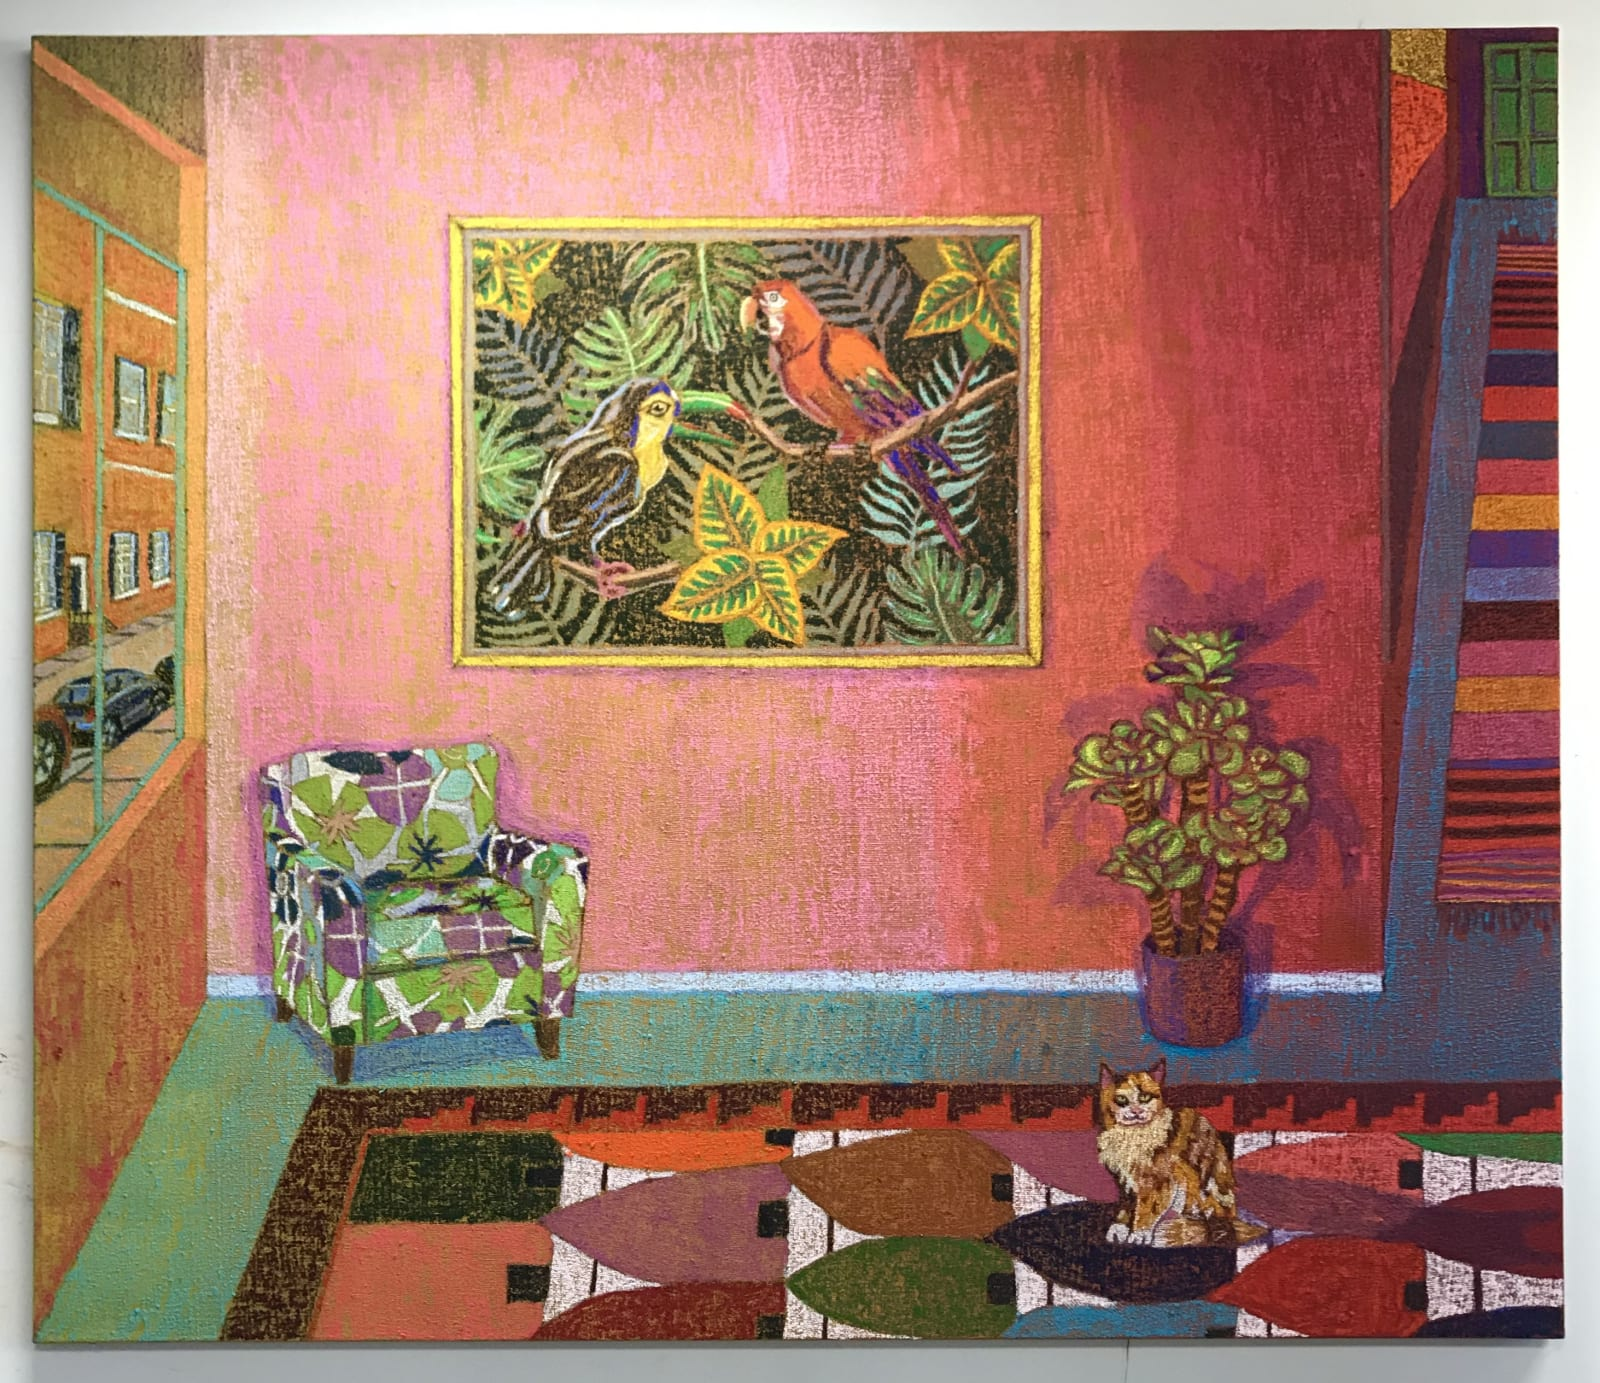 JJ Manford, The Waiting Room, 2020, 72 x 84 inches, oil stick and Flashe on burlap over canvas